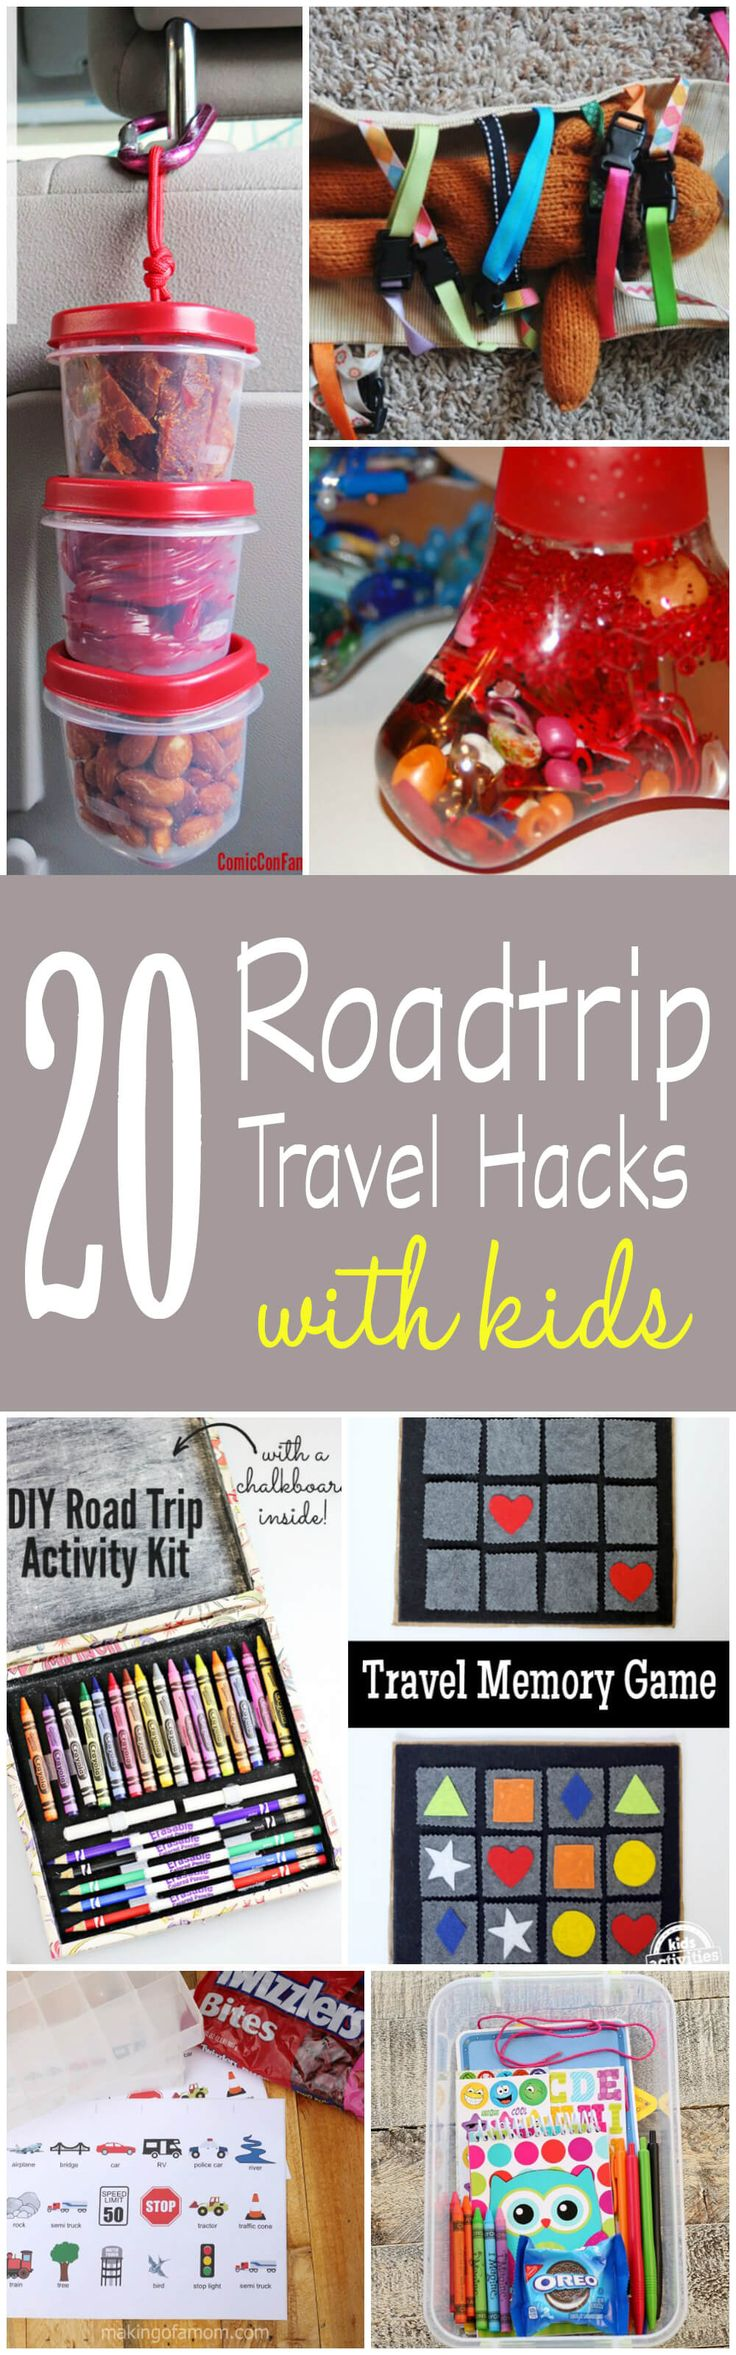 20 Travel Hacks for Roadtrips with Kids! If you are planning a family vacation, these travel tips and idea